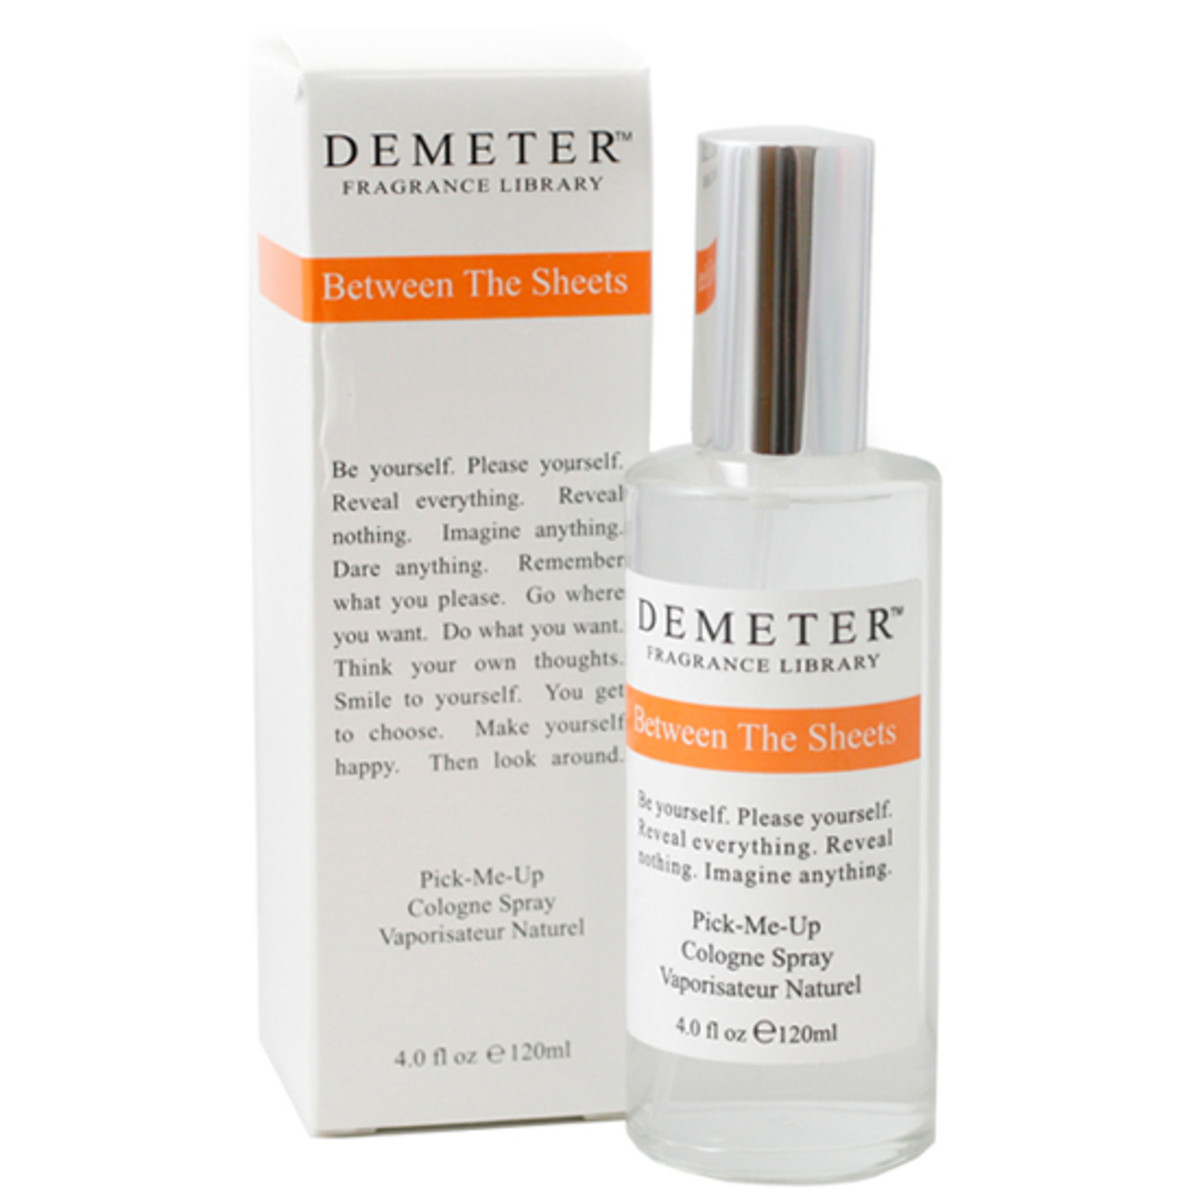 Demeter Pick-Me-Up Cologne Spray in Between The Sheets